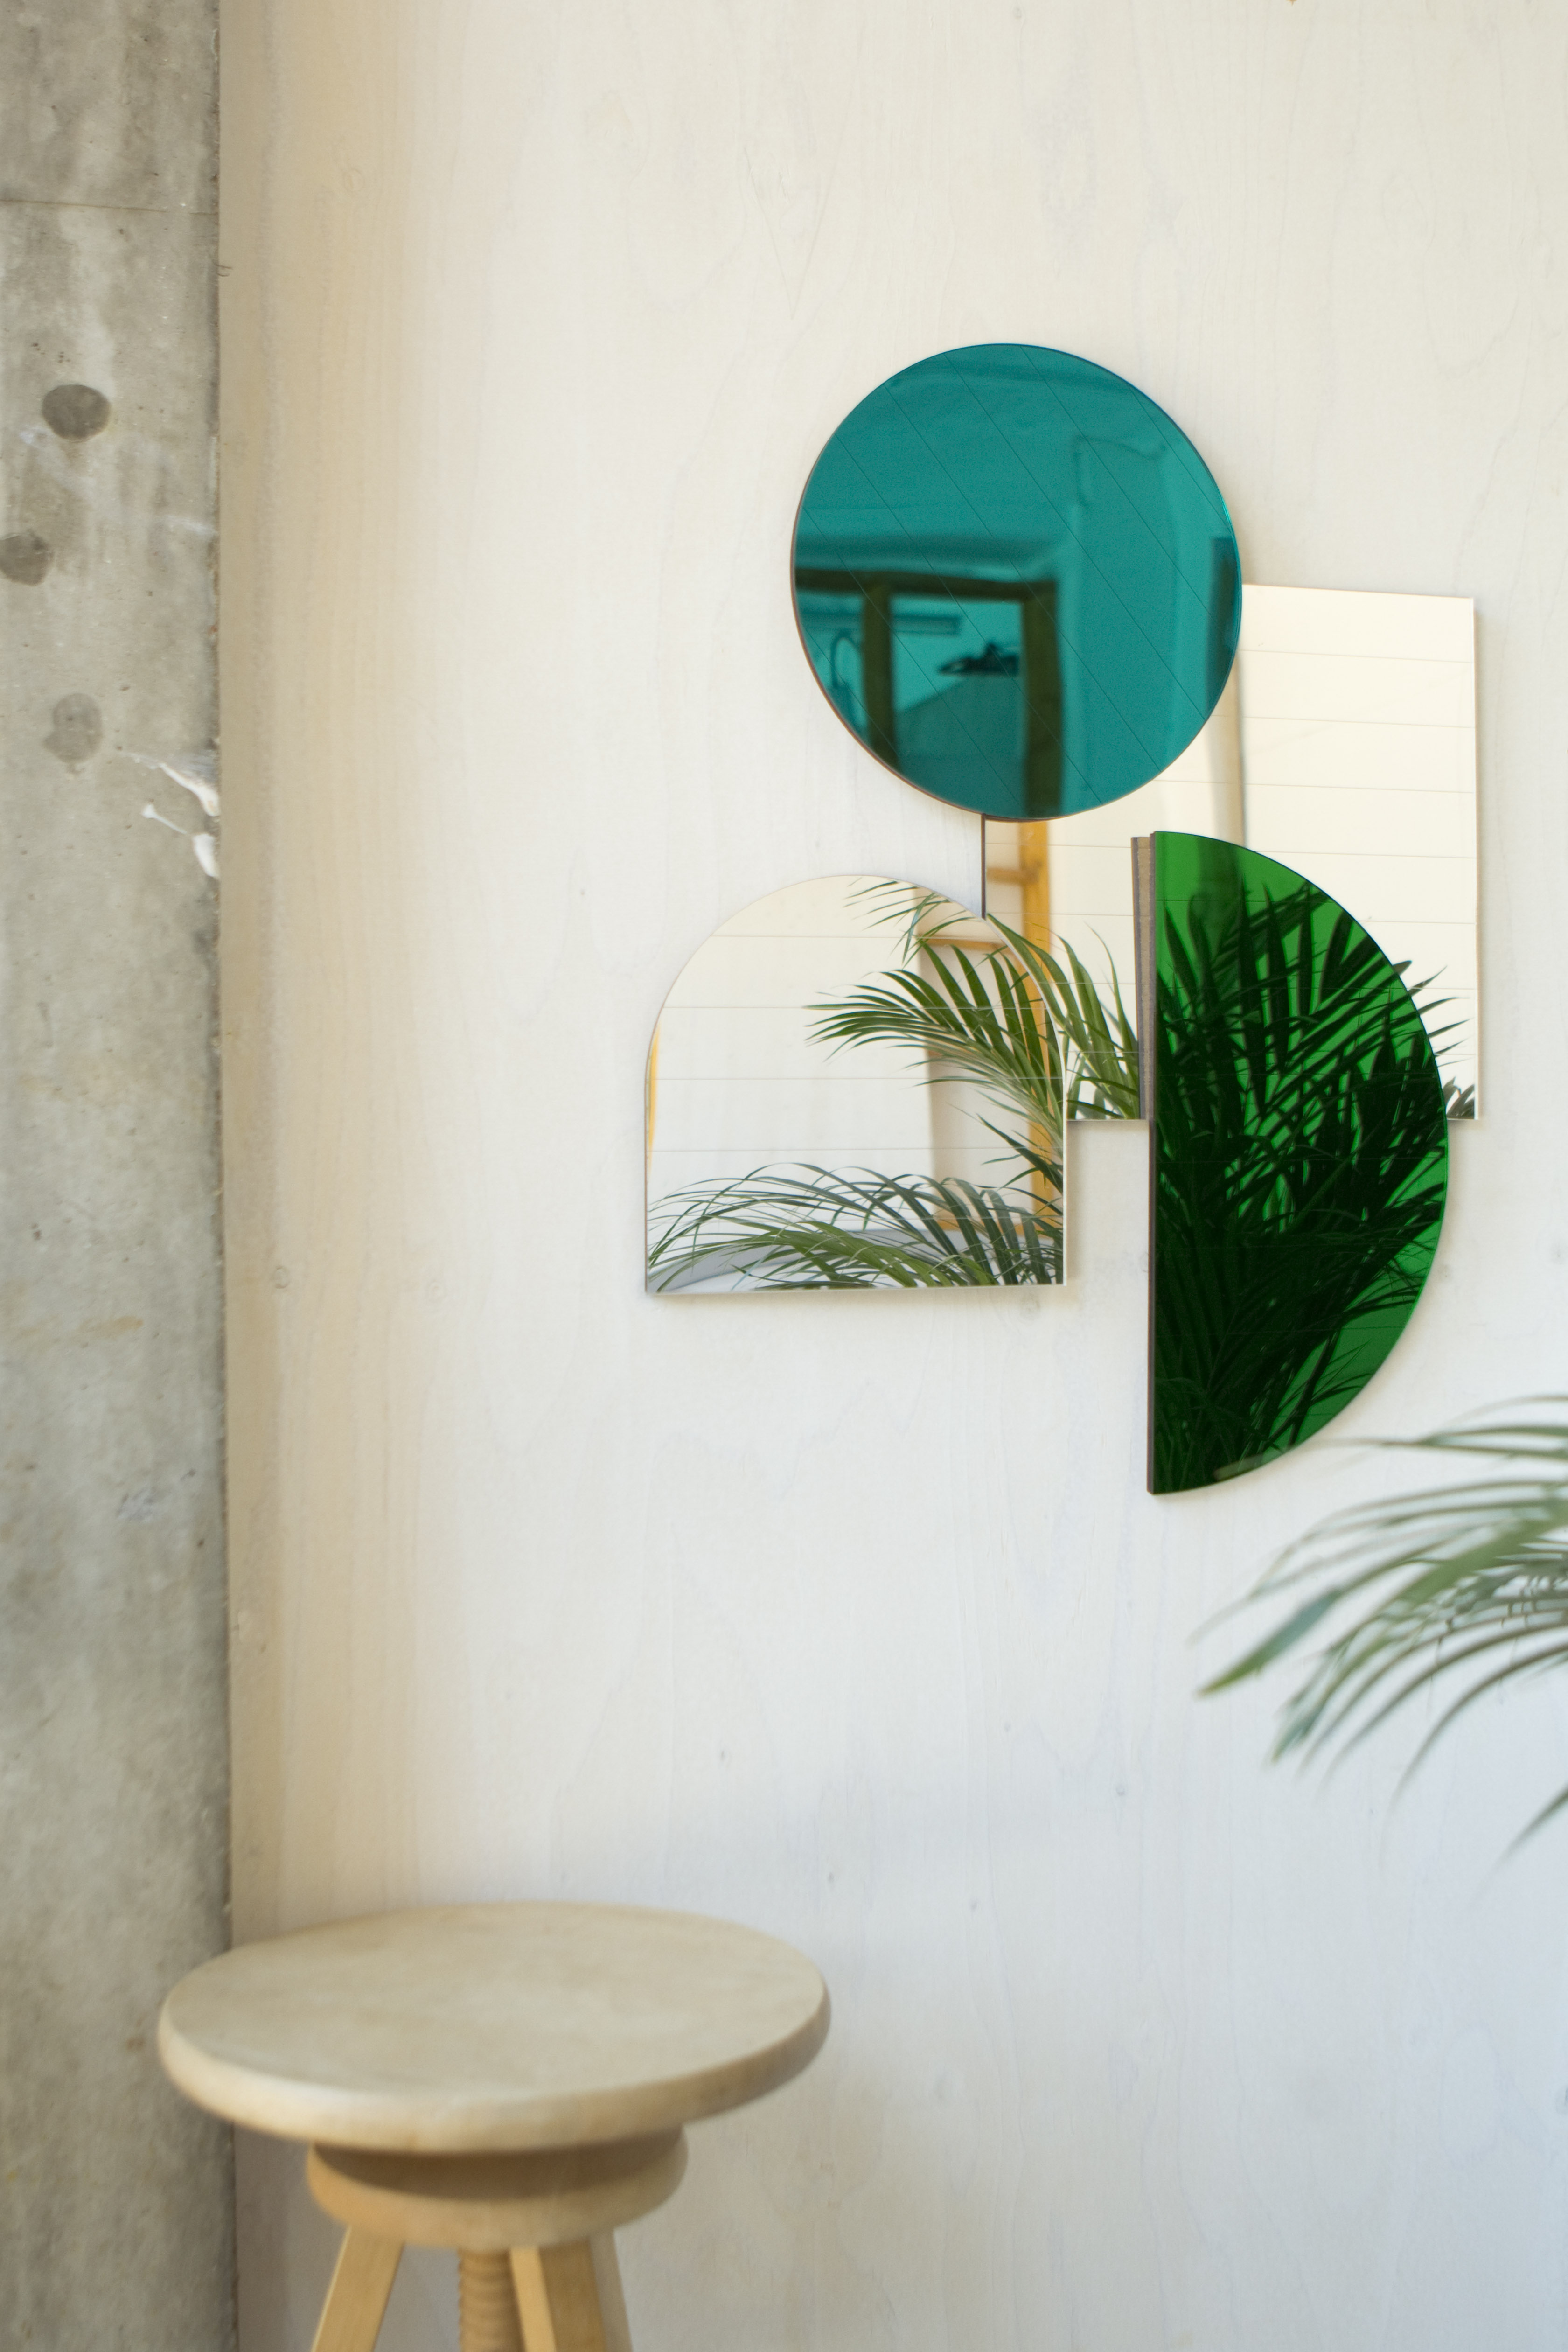 Layer Collection of modular mirrors in Teal colourway